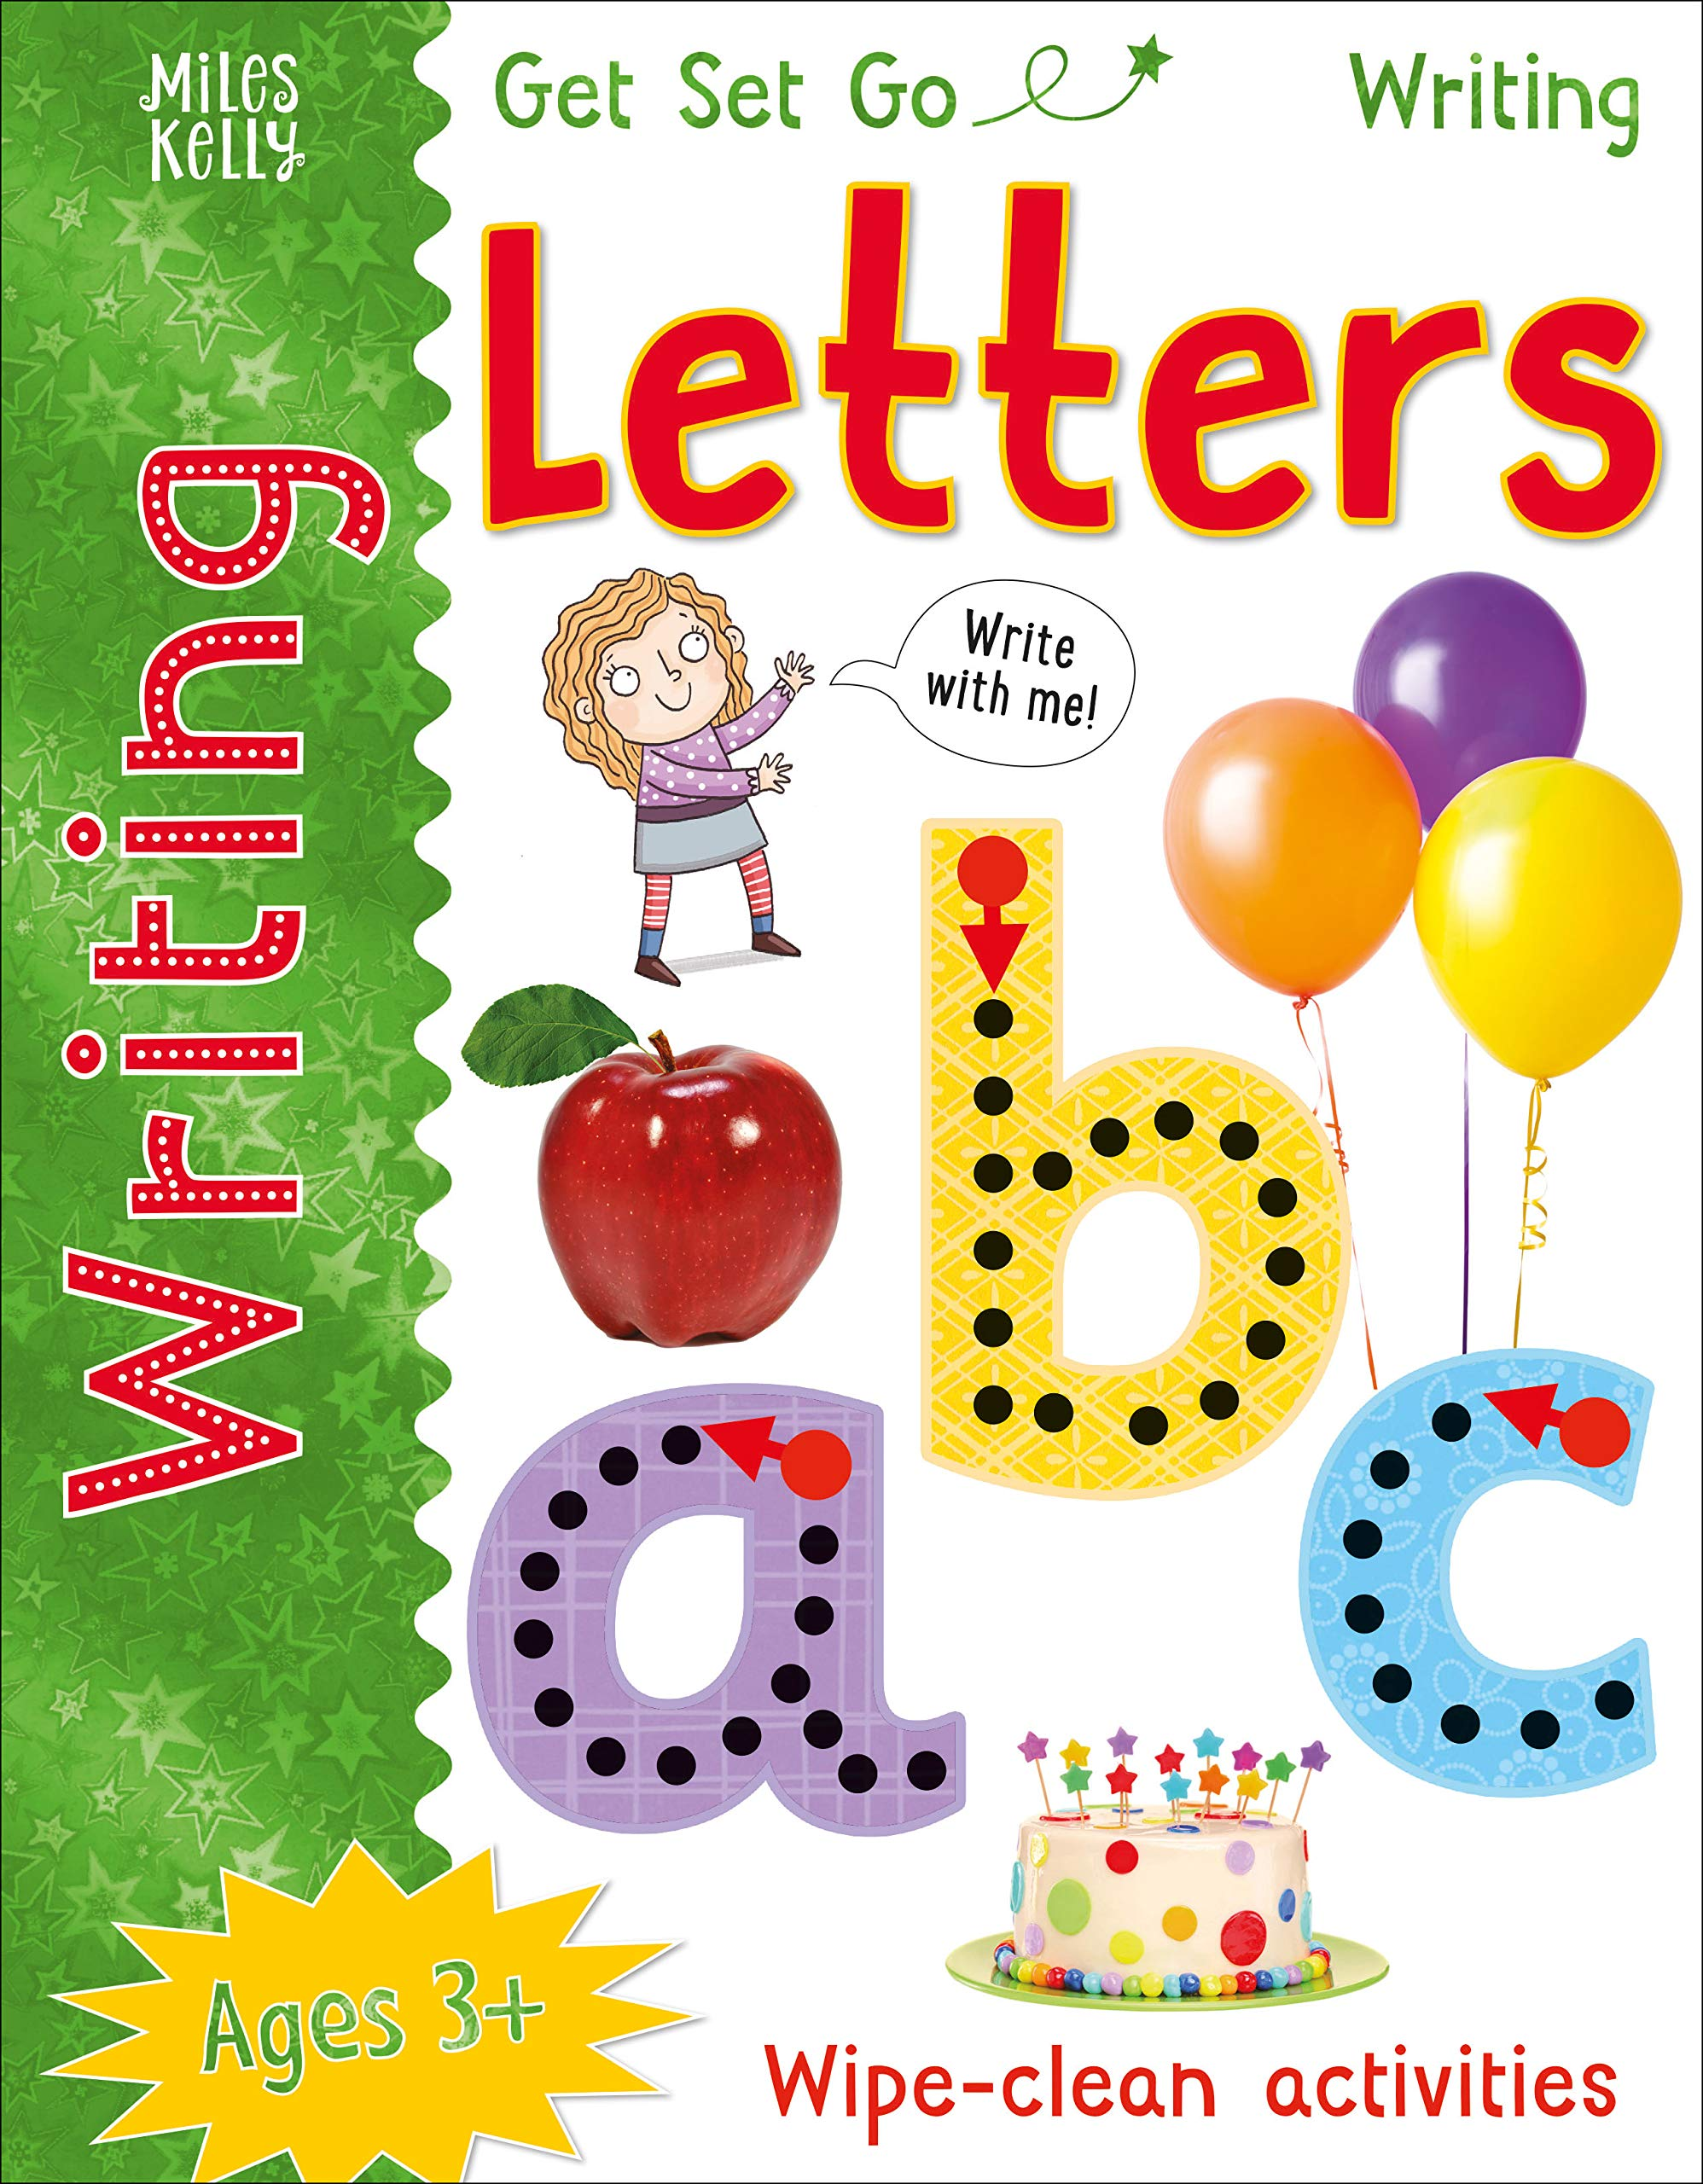 GSG WRITING LETTERS (GET SET GO WRITING)